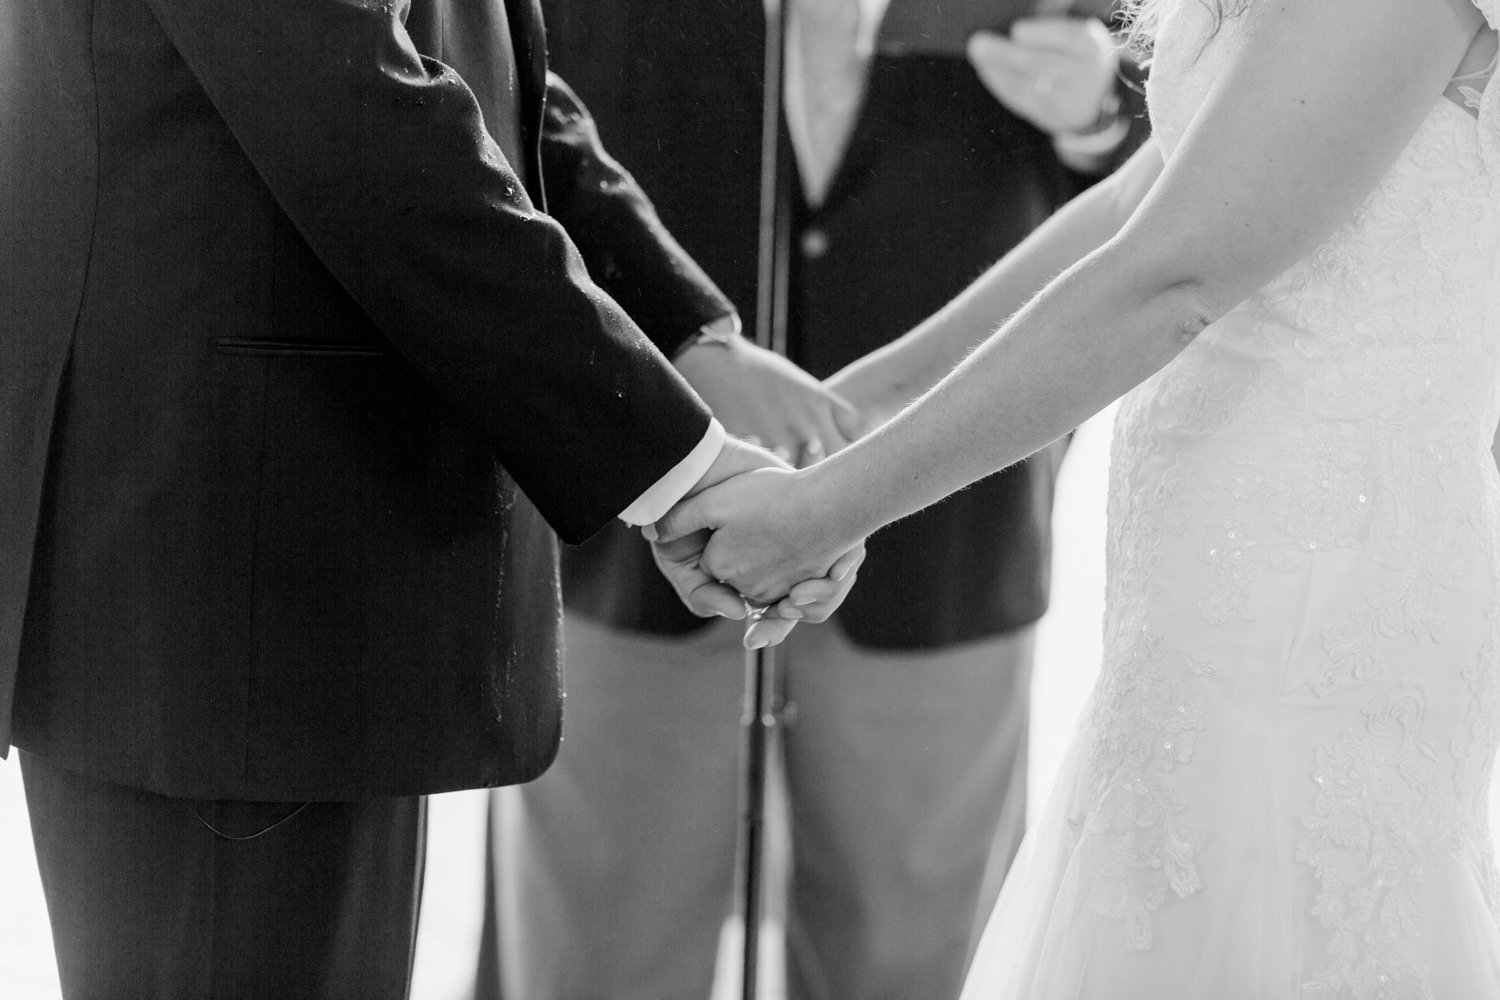 Community_Life_Center_Indianapolis_Indiana_Wedding_Photographer_Chloe_Luka_Photography_6964.jpg